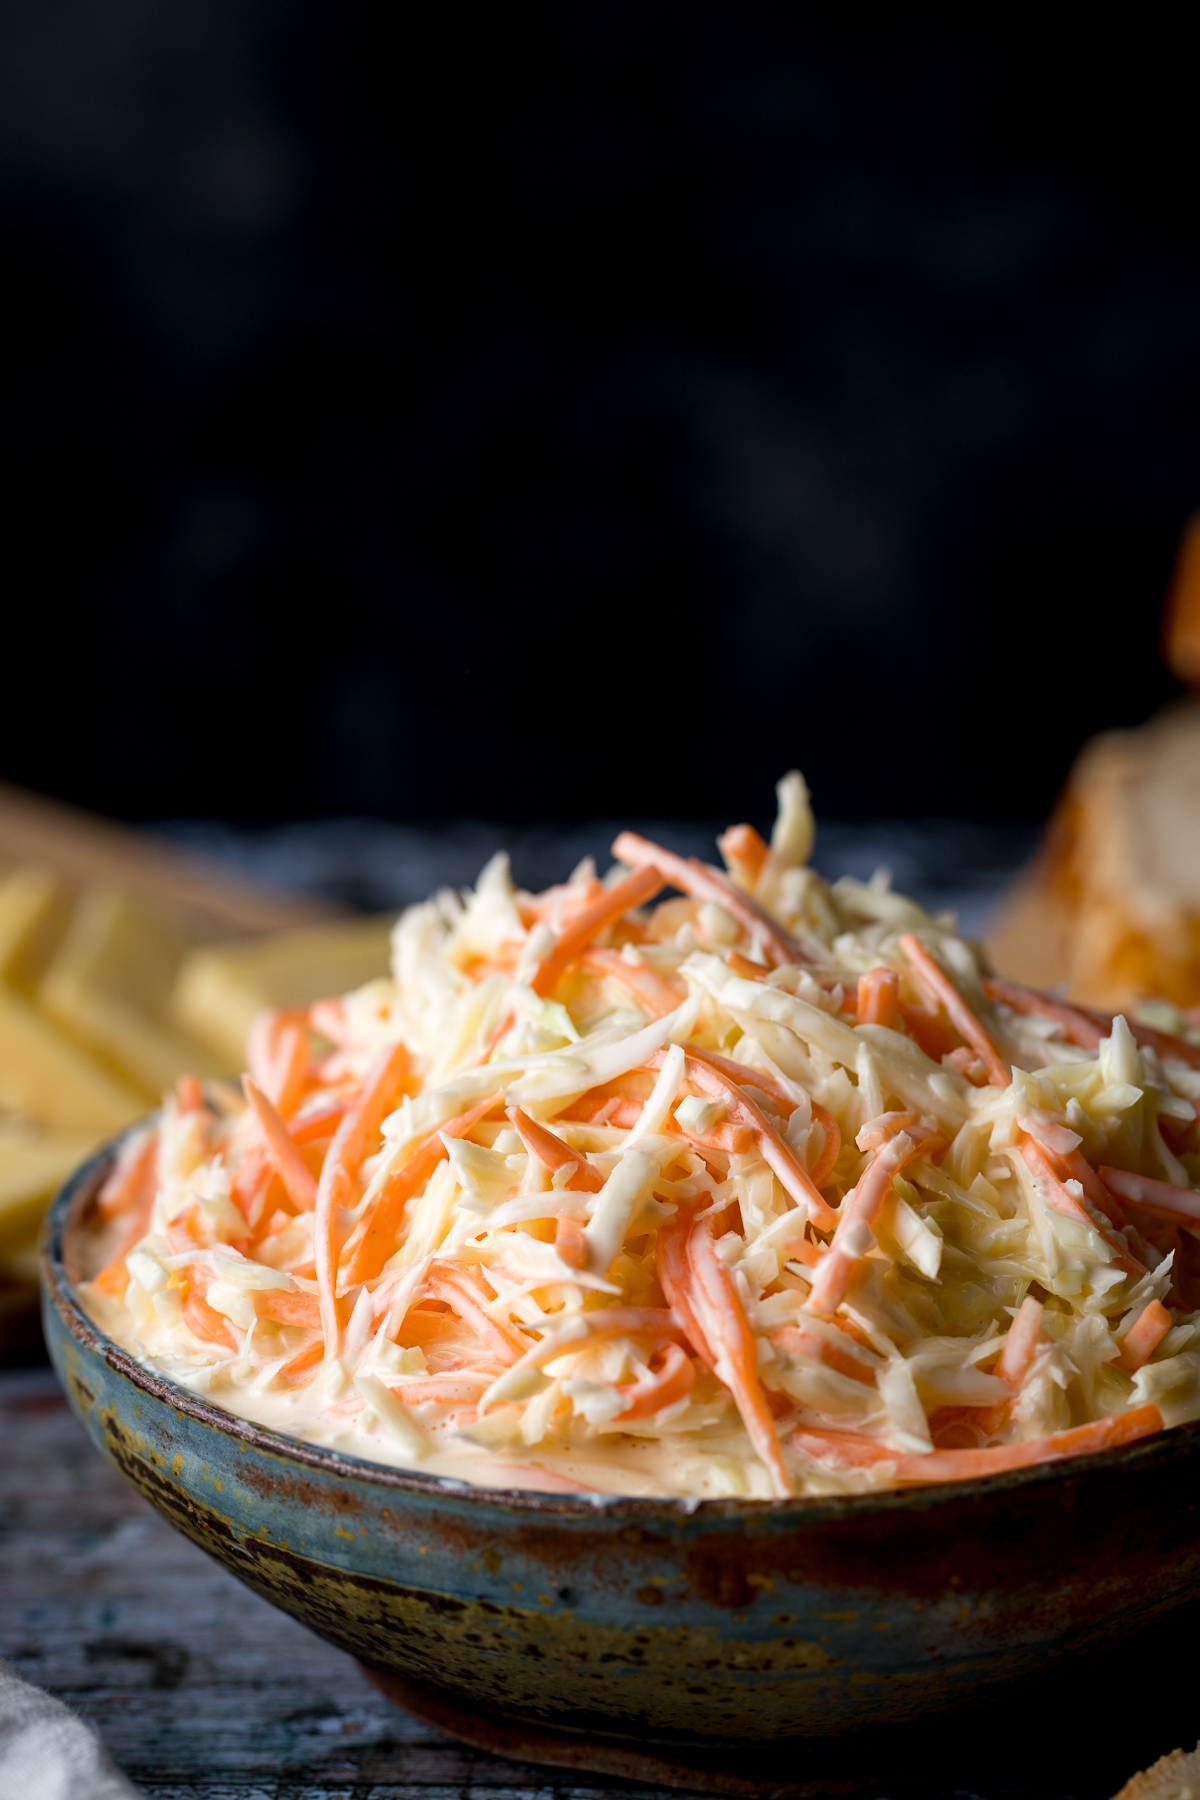 KFC style coleslaw in a bowl